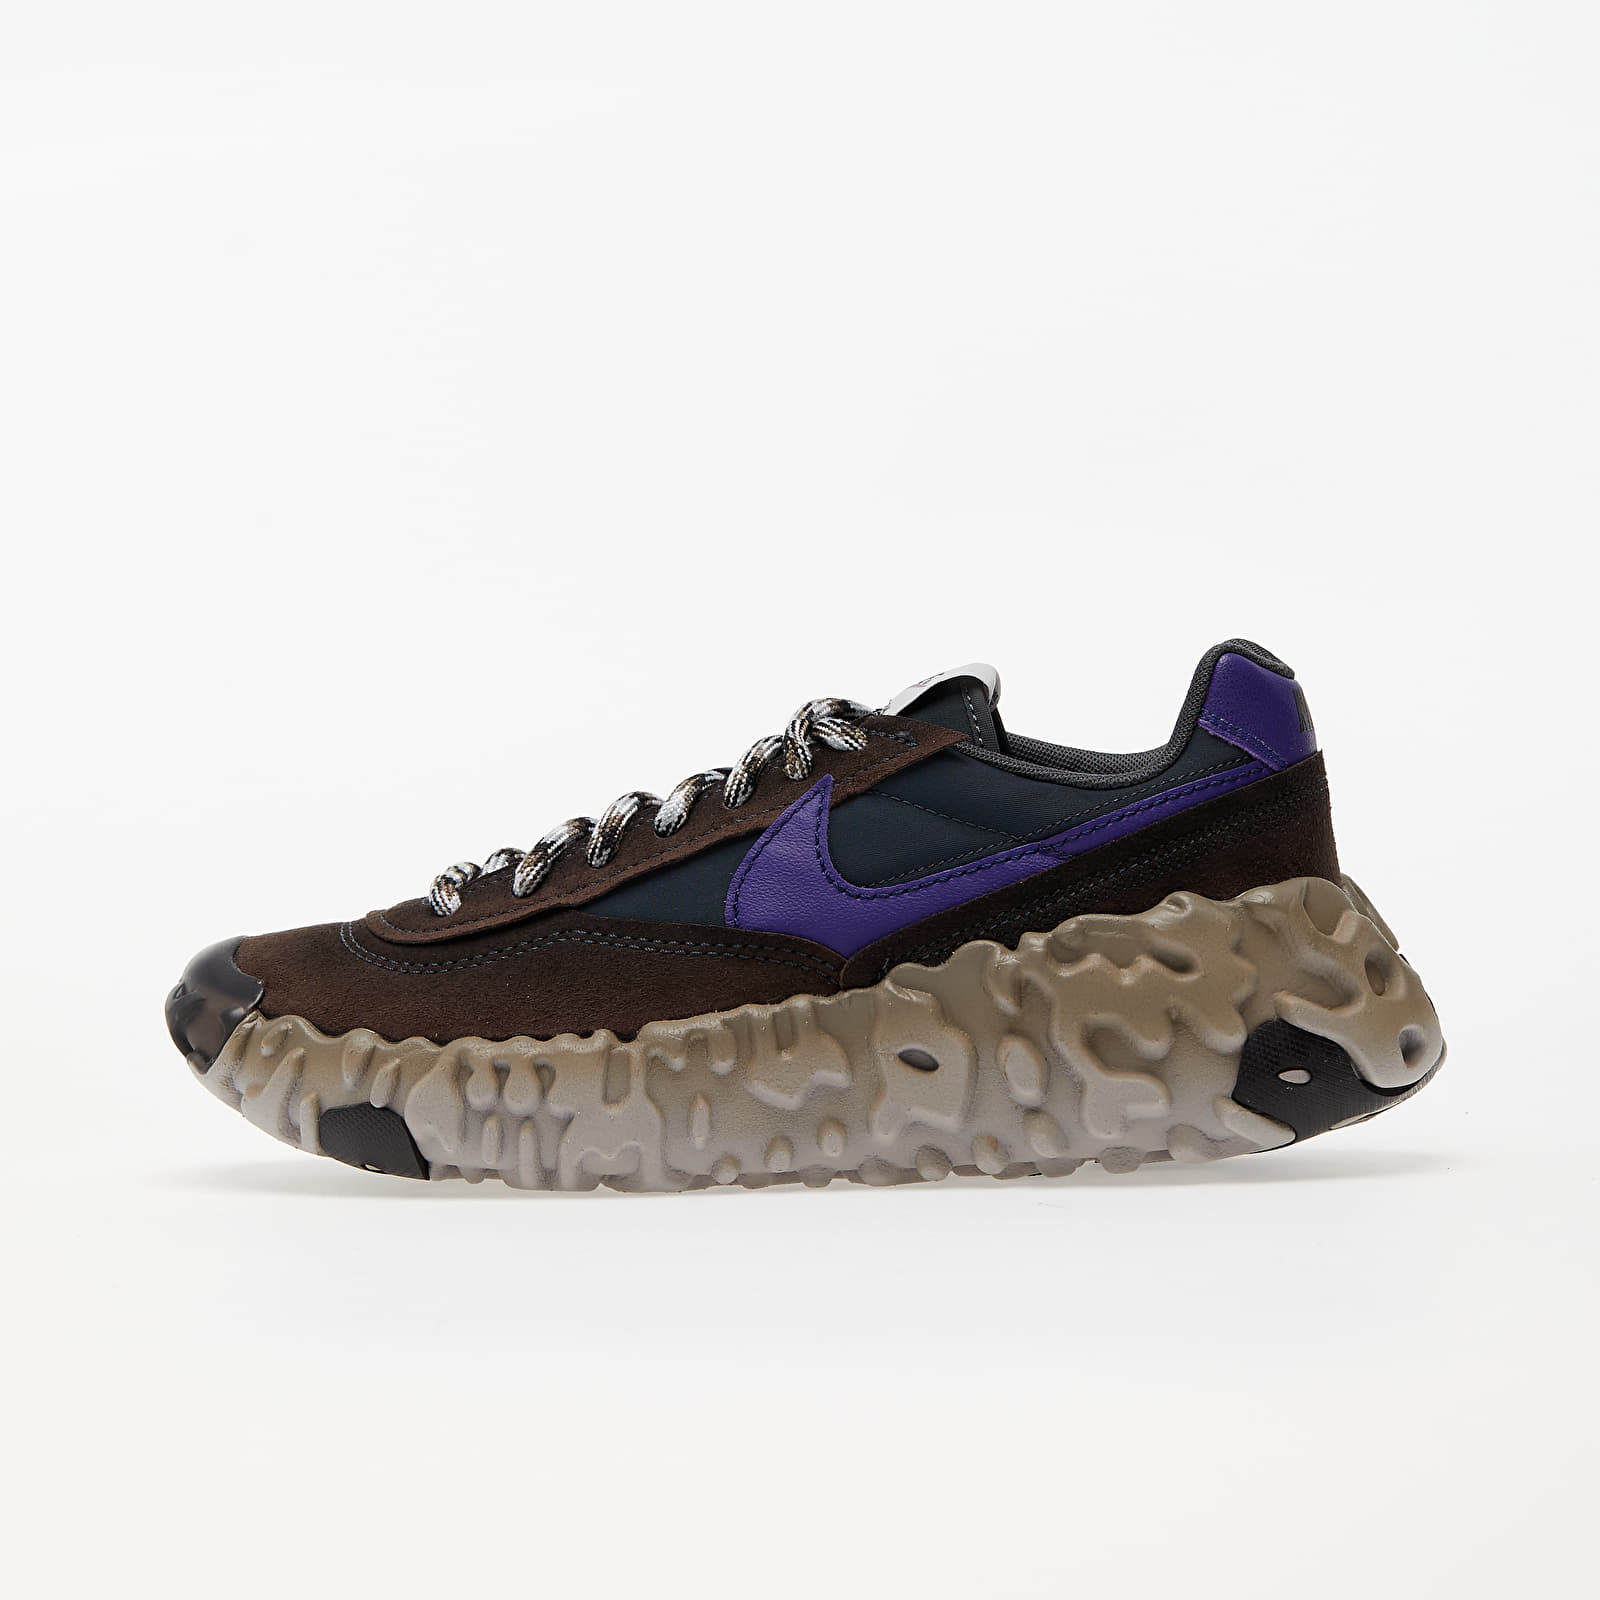 Nike W Overbreak SP Baroque Brown/ New Orchid-Black DA9784-200